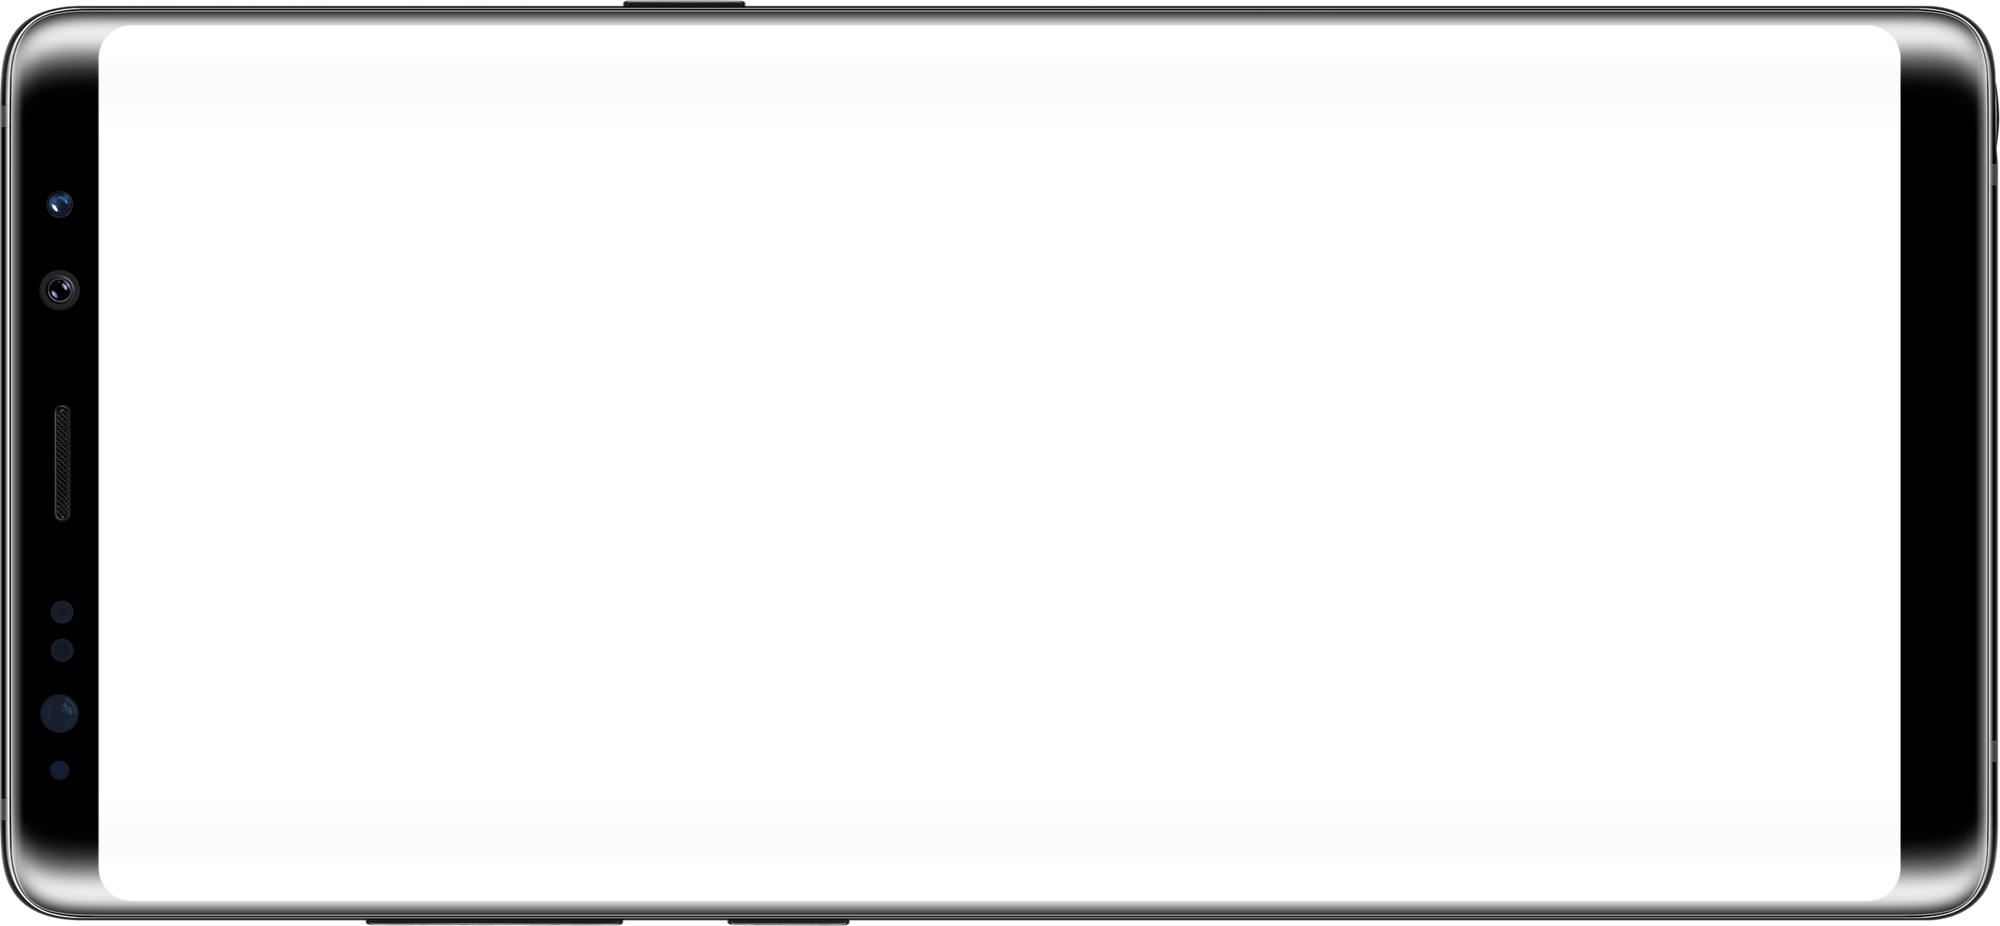 samsung phone png. galaxy note8 in landscape mode samsung phone png u